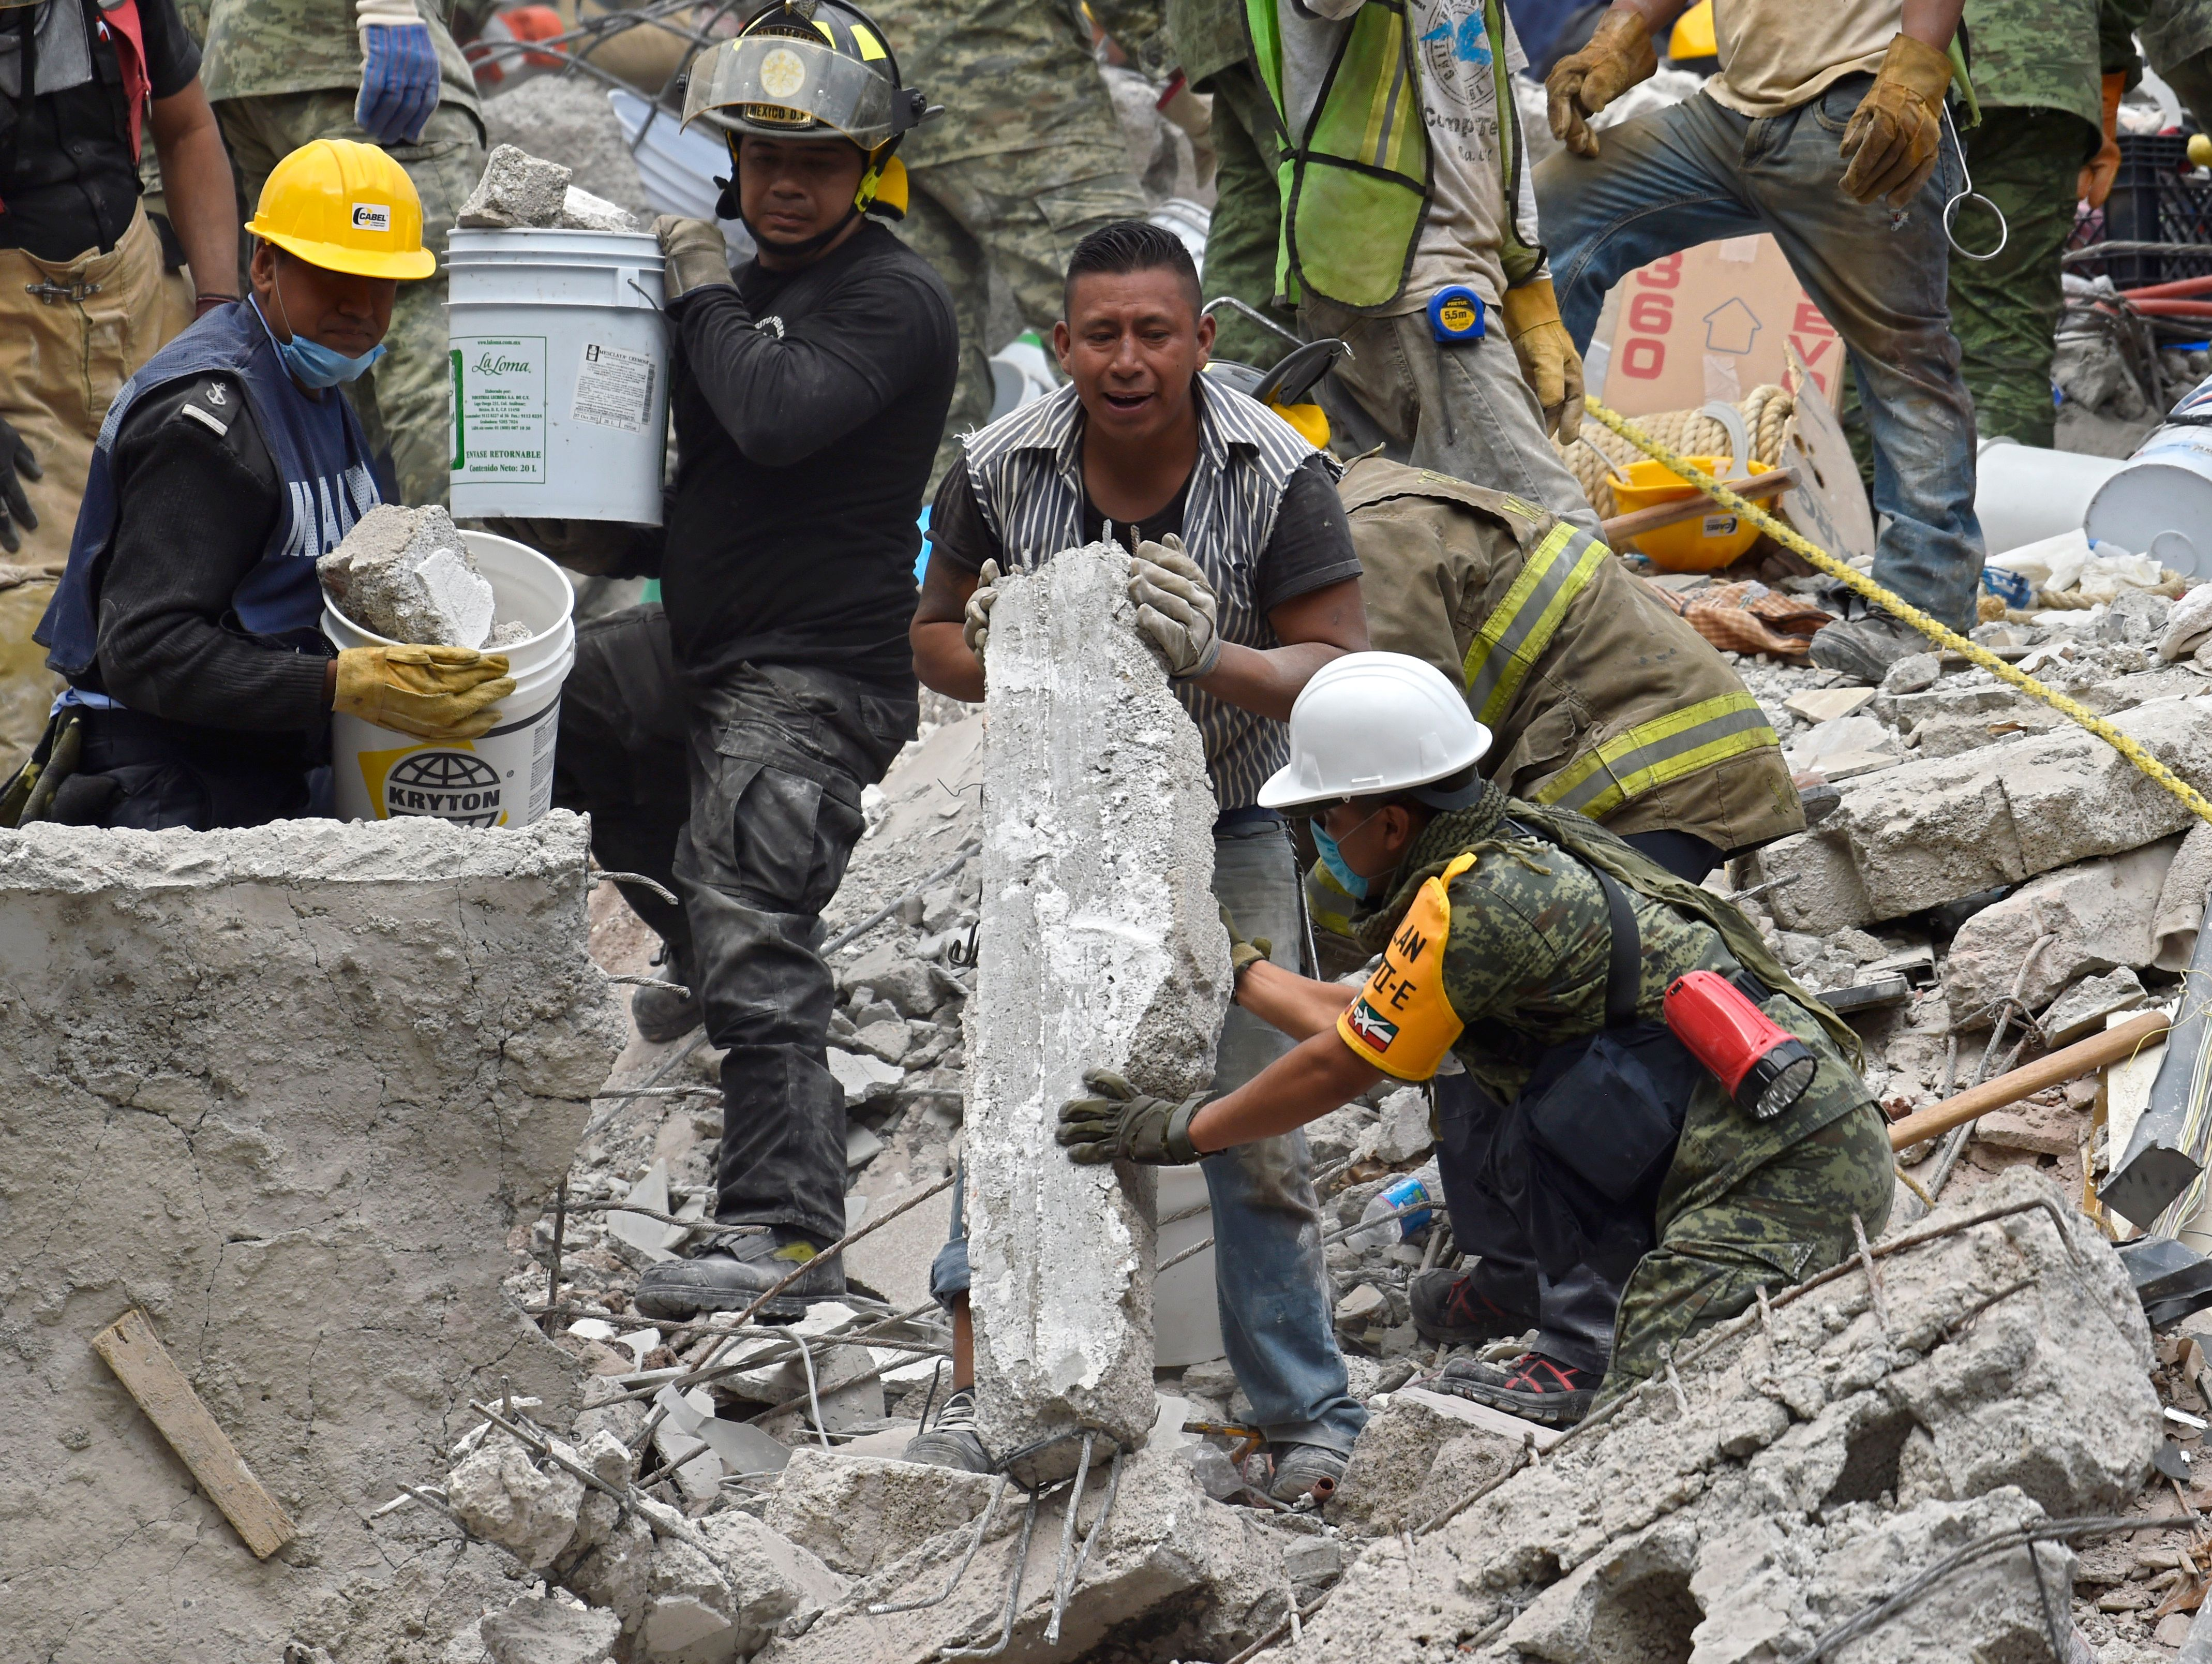 A marine, a firefighter, a volunteer and a soldier work together in the removal of debris of a flattened building in Mexico City on September 20, 2017 as the search for survivors continues a day after a strong quake hit central Mexico. A powerful 7.1 earthquake shook Mexico City on Tuesday, causing panic among the megalopolis' 20 million inhabitants on the 32nd anniversary of a devastating 1985 quake. / AFP PHOTO / Pedro PARDO (Photo credit should read PEDRO PARDO/AFP/Getty Images)